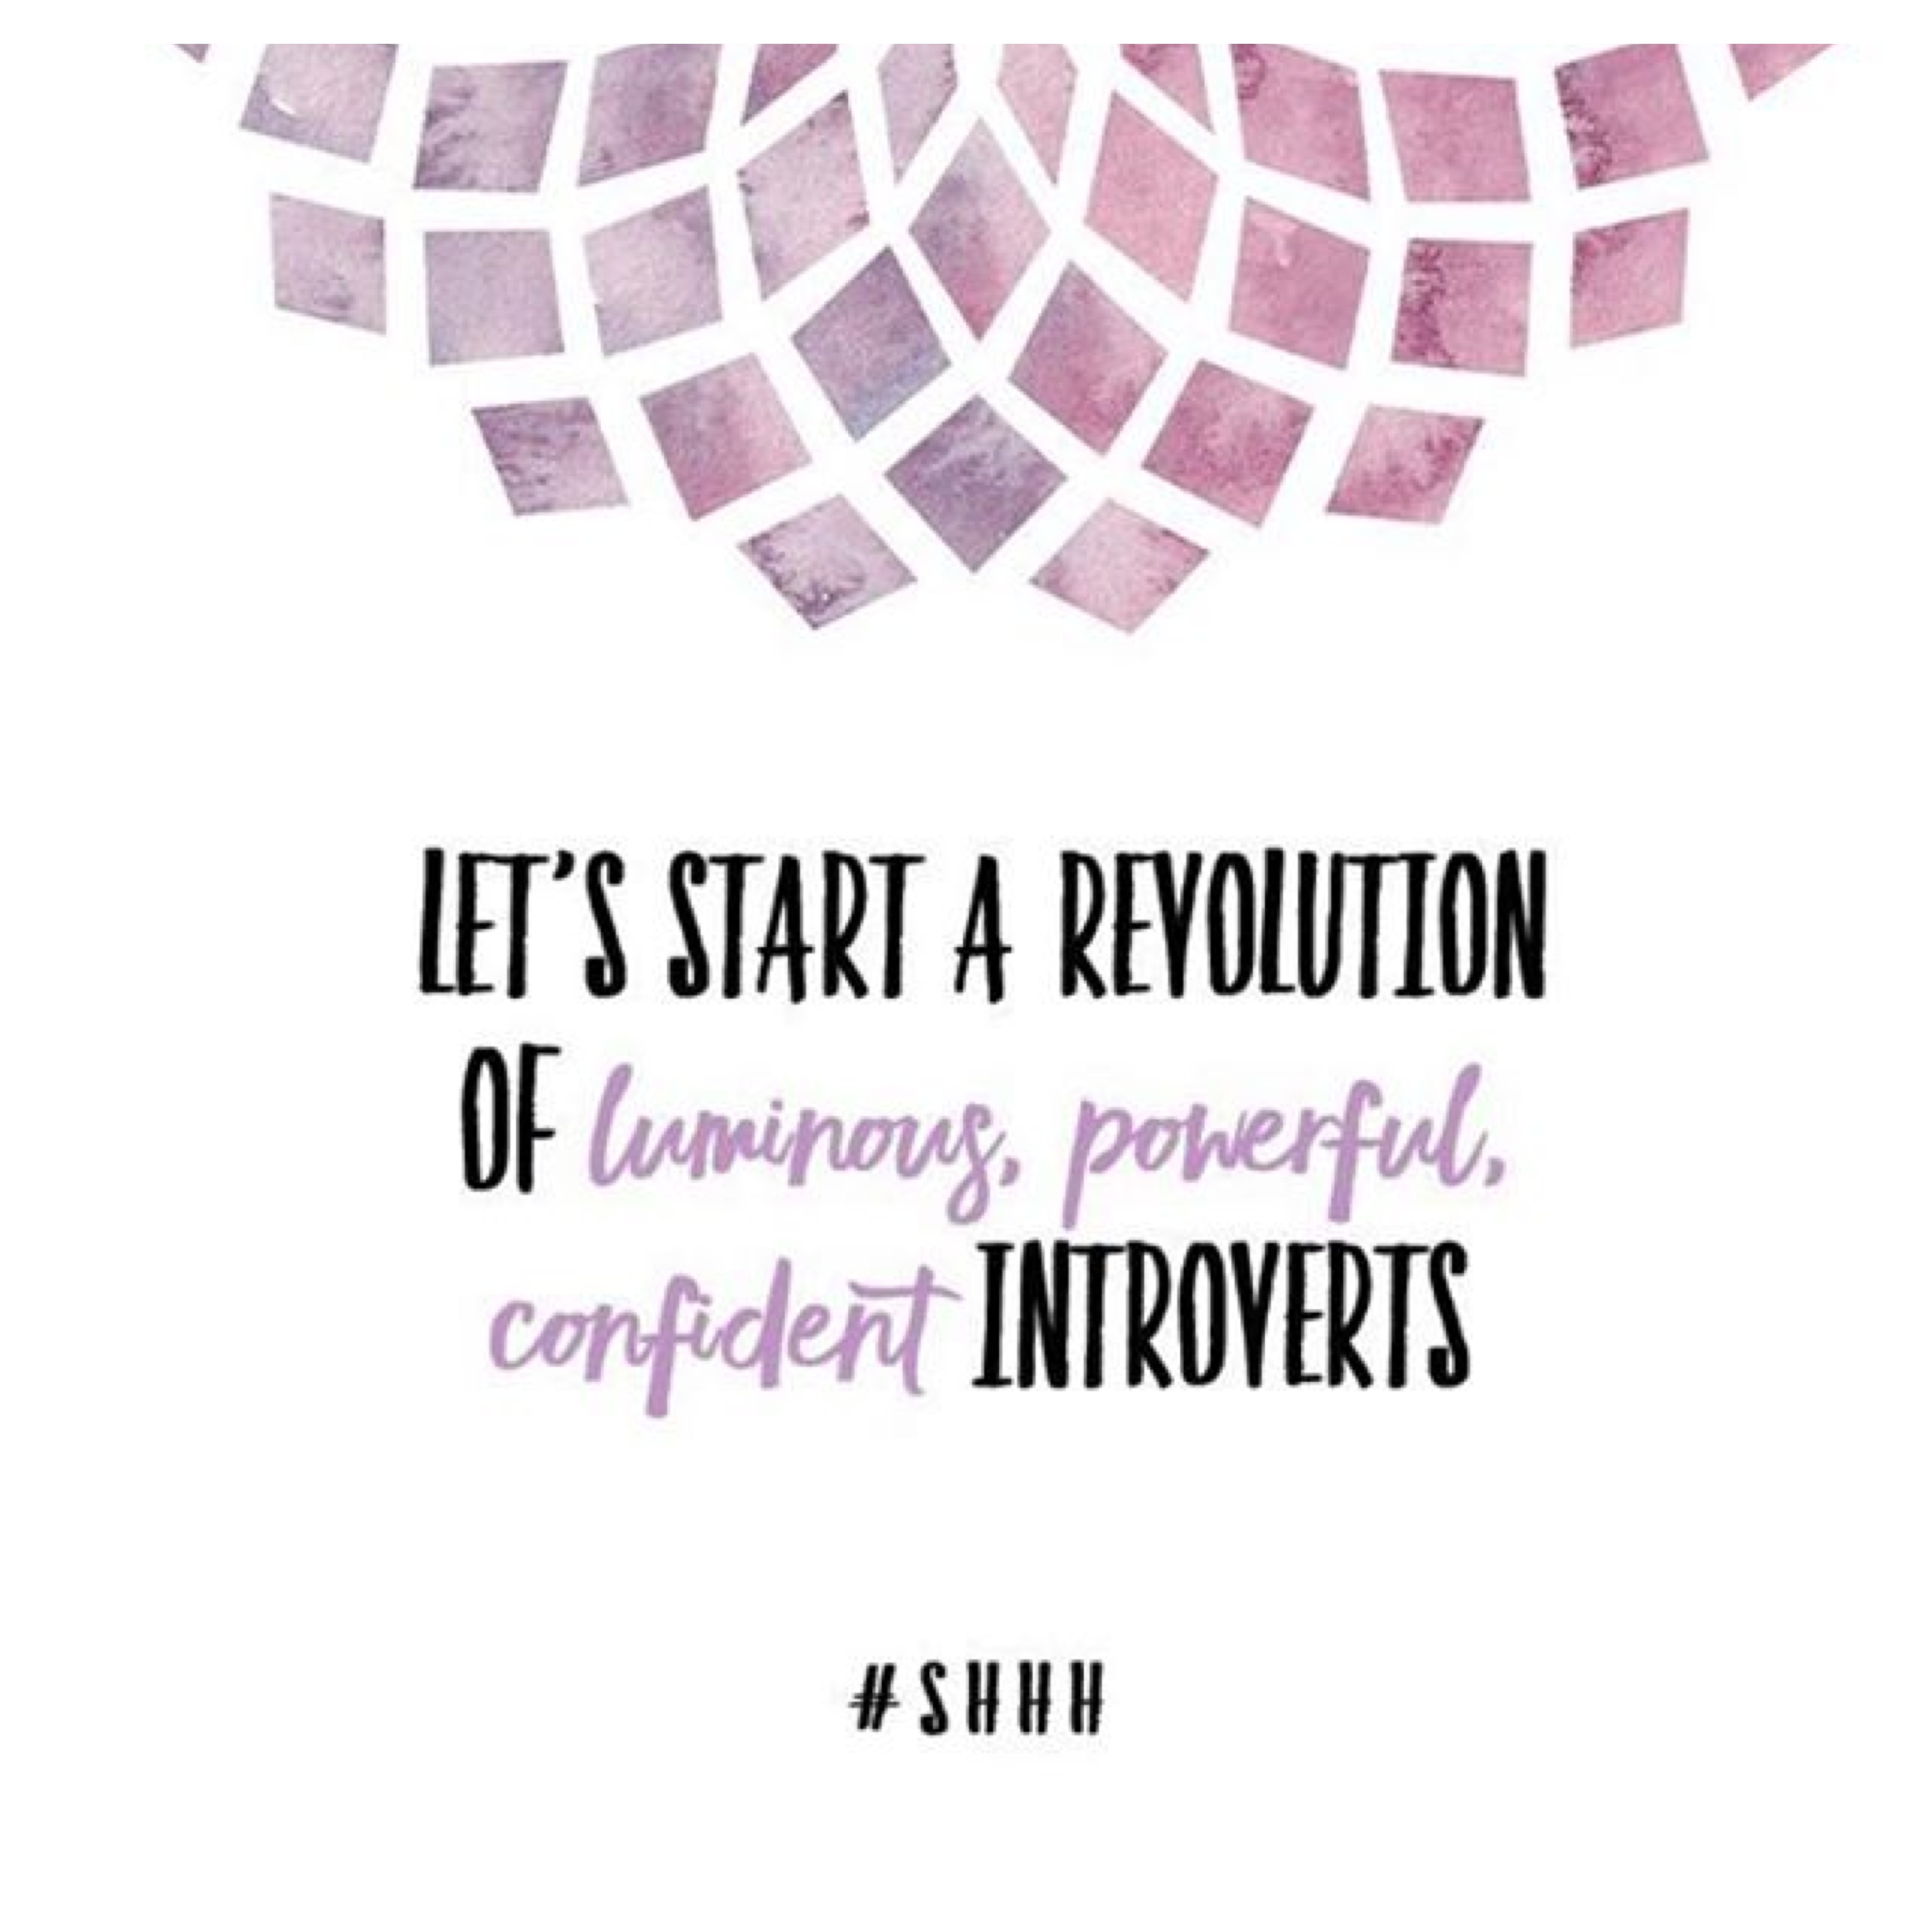 Let's start a revolution of luminous, powerful, confident introverts http://katherinemackenziesmith.com/shhh-book/